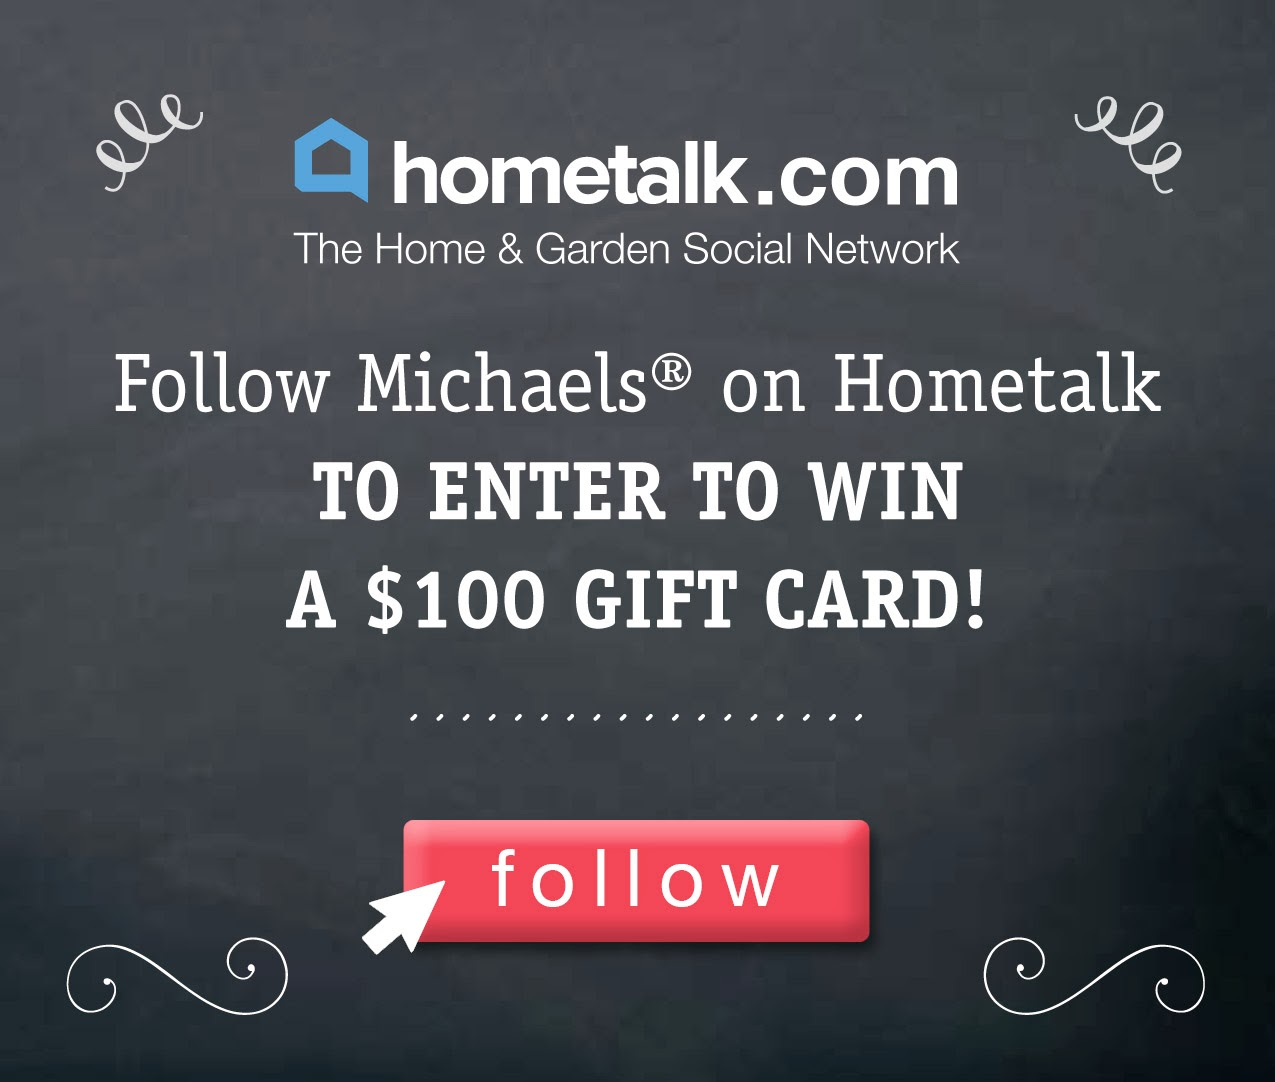 win $100 Gift Card with Michaels and Hometalk via http://deniseonawhim.blogspot.com